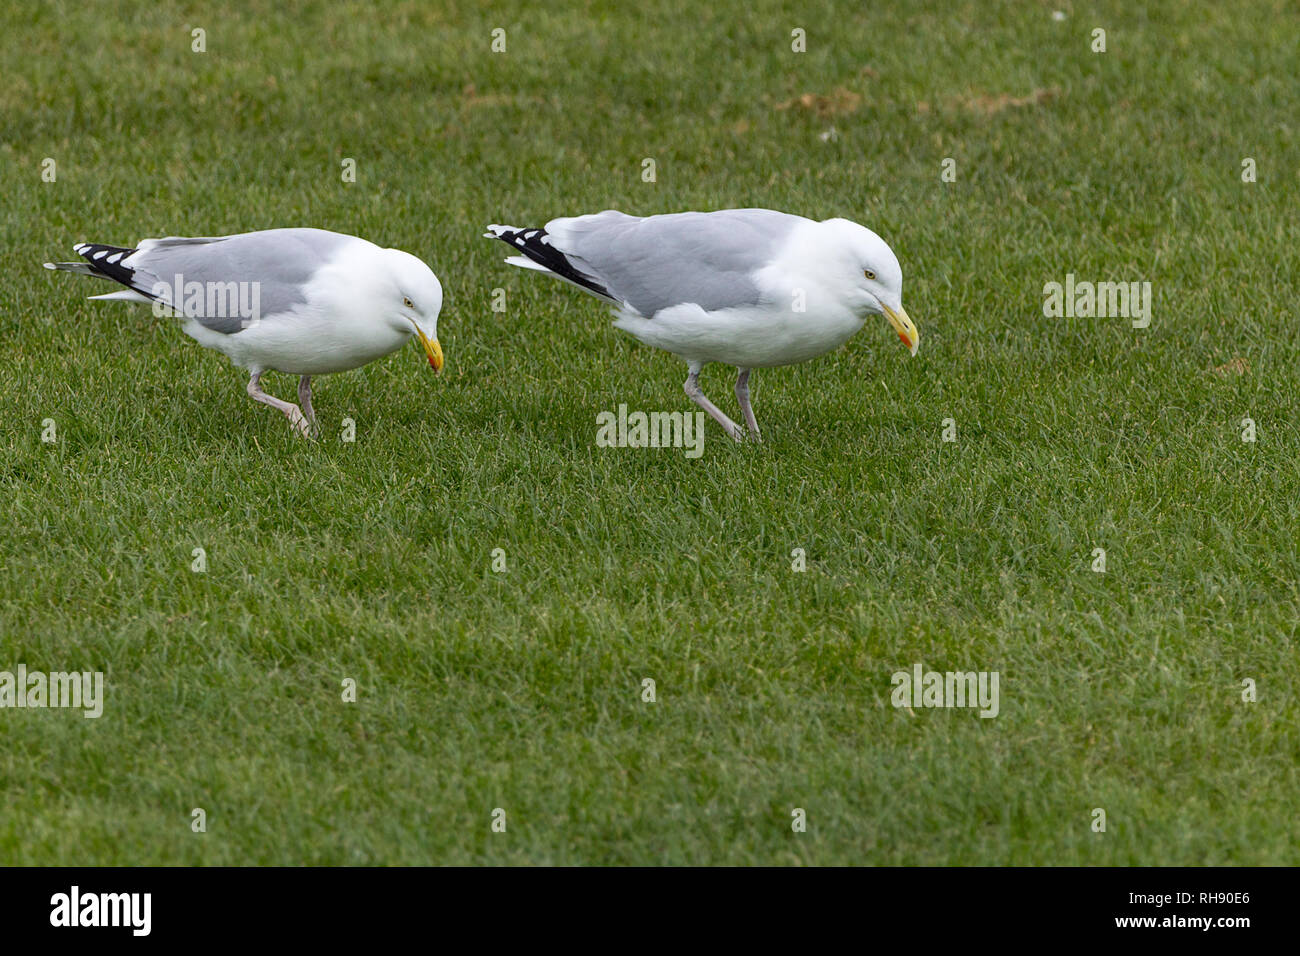 These Herring gulls (Larus argentatus) are dancing feet shuffling on the spot to attract worms thinking it may be rain worms will come to the surface. - Stock Image